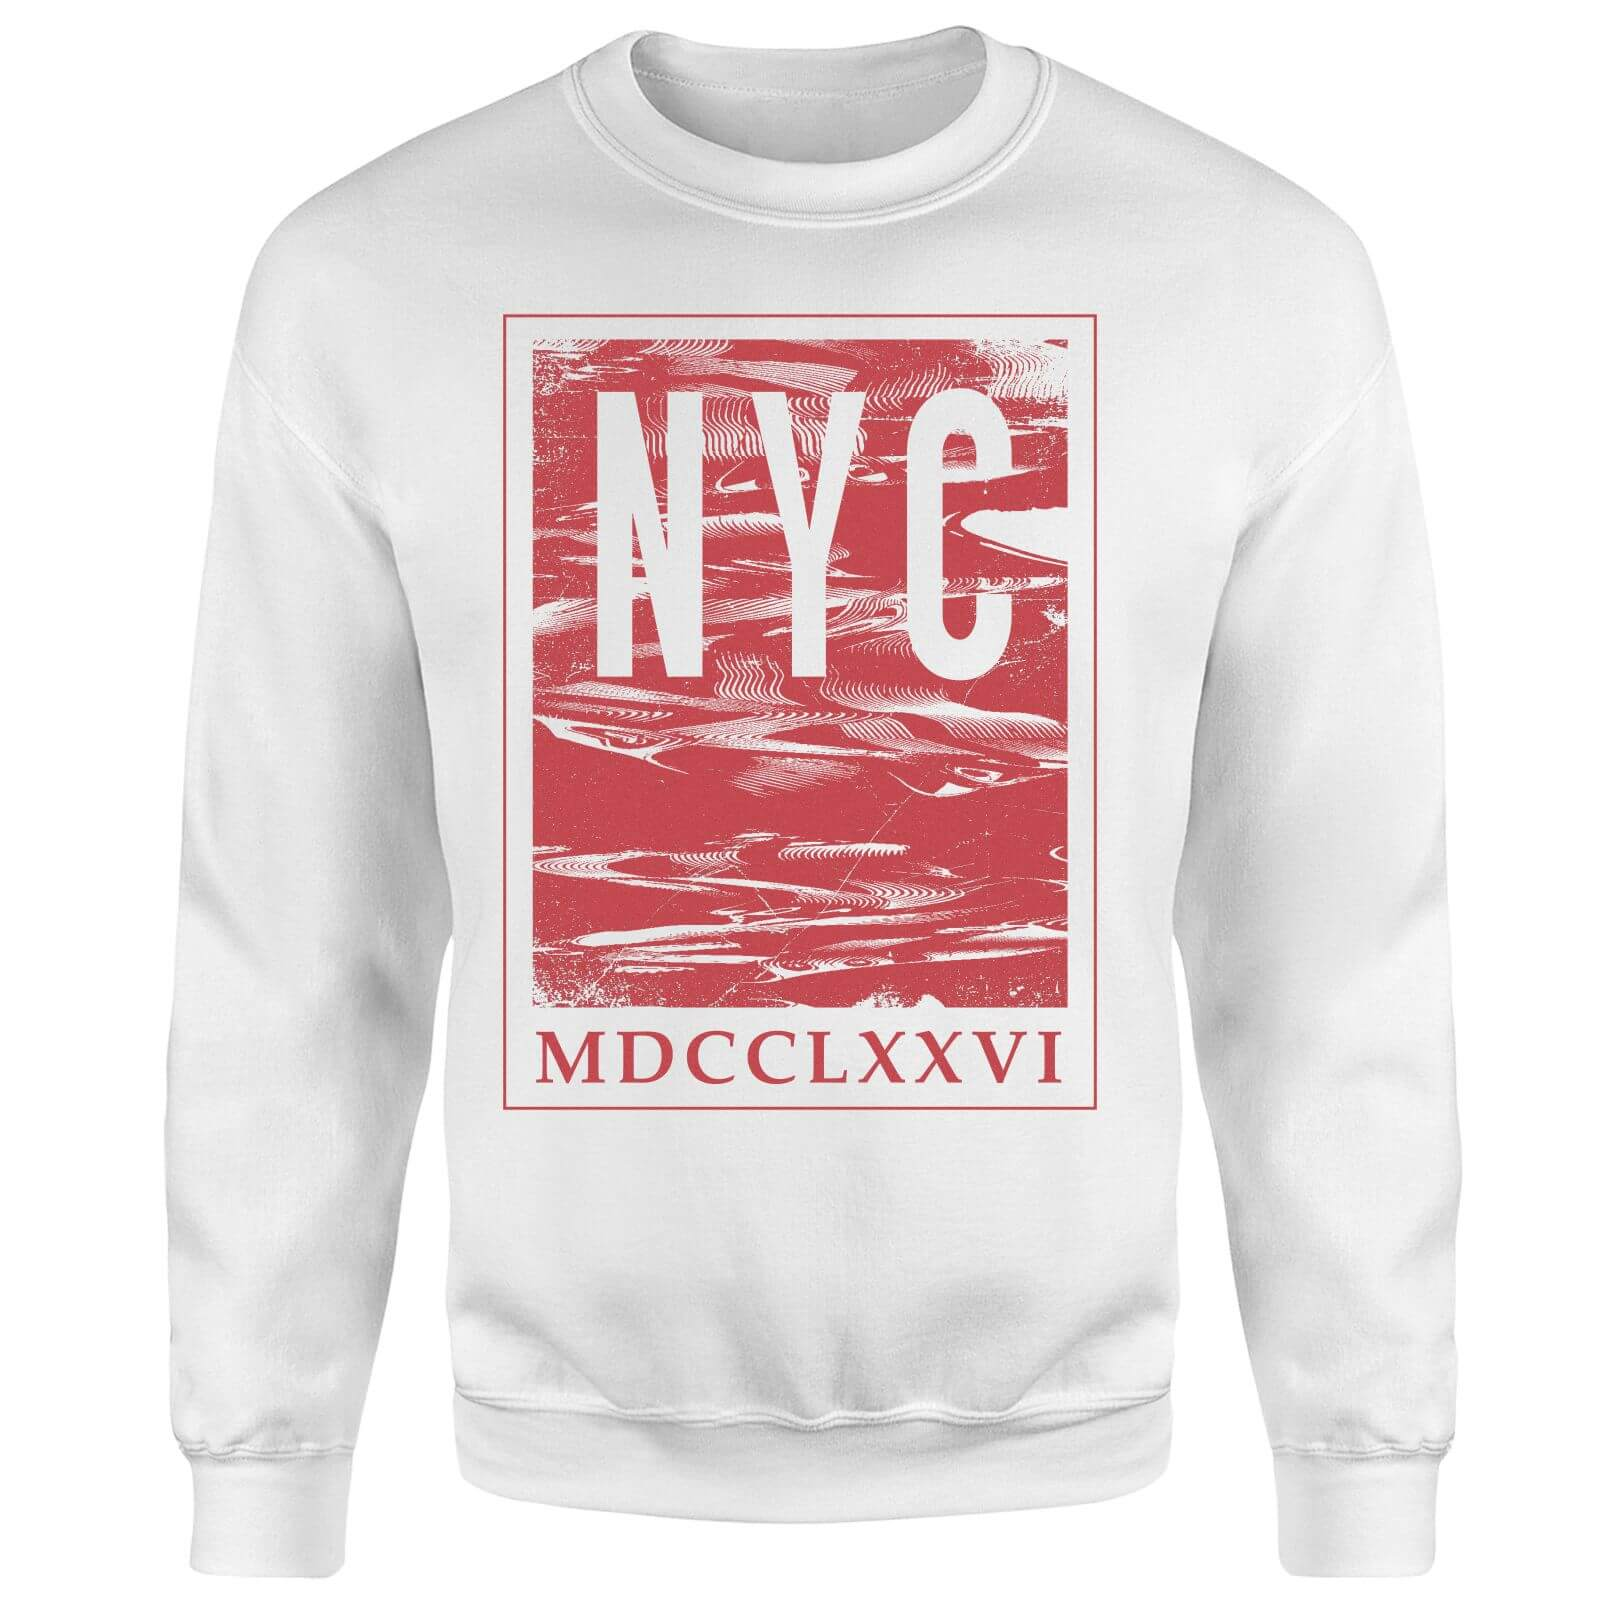 NYC Roman Sweatshirt - White